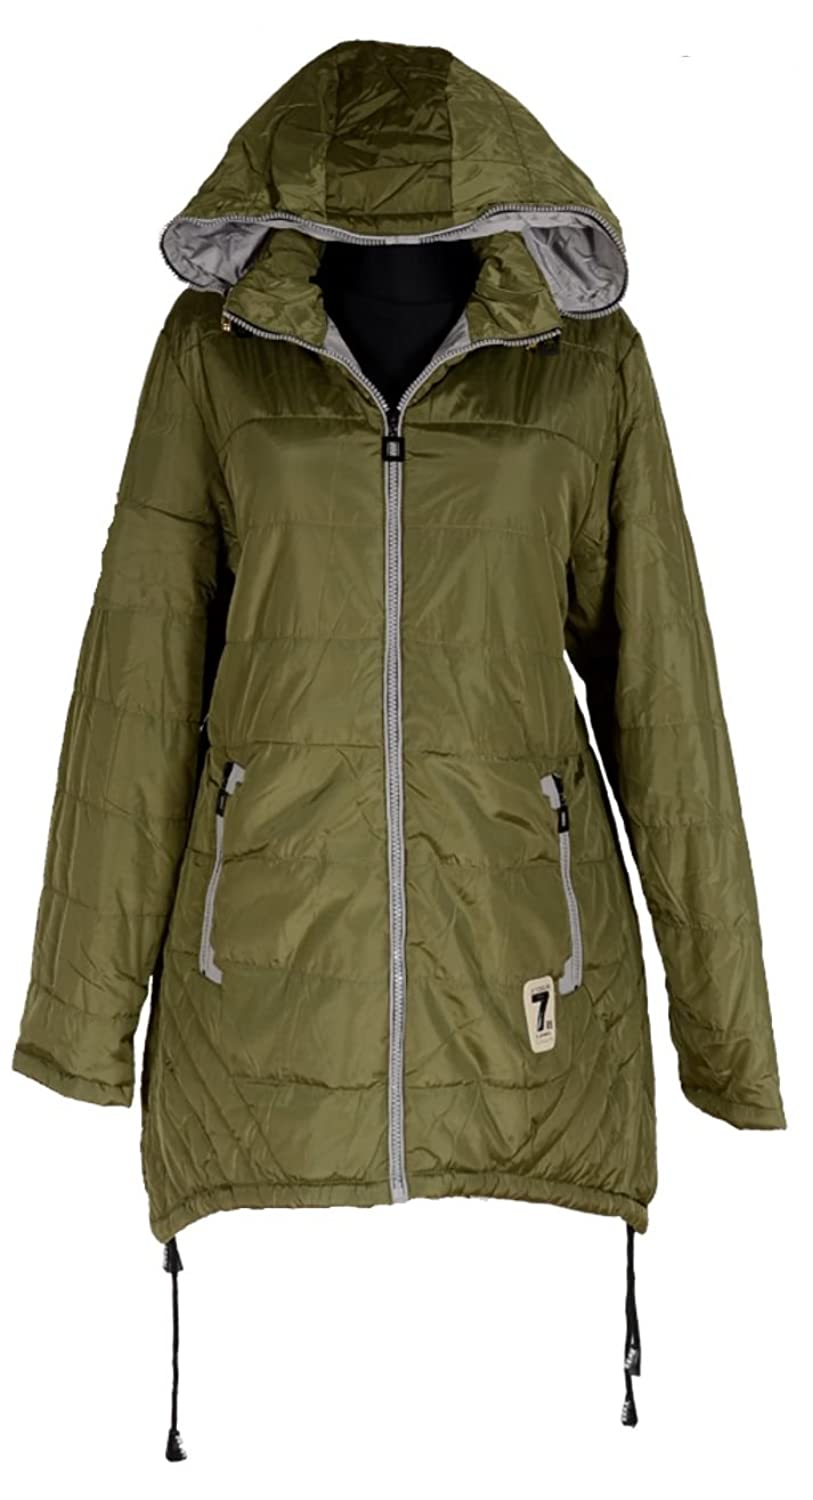 Winter jacke damen 48